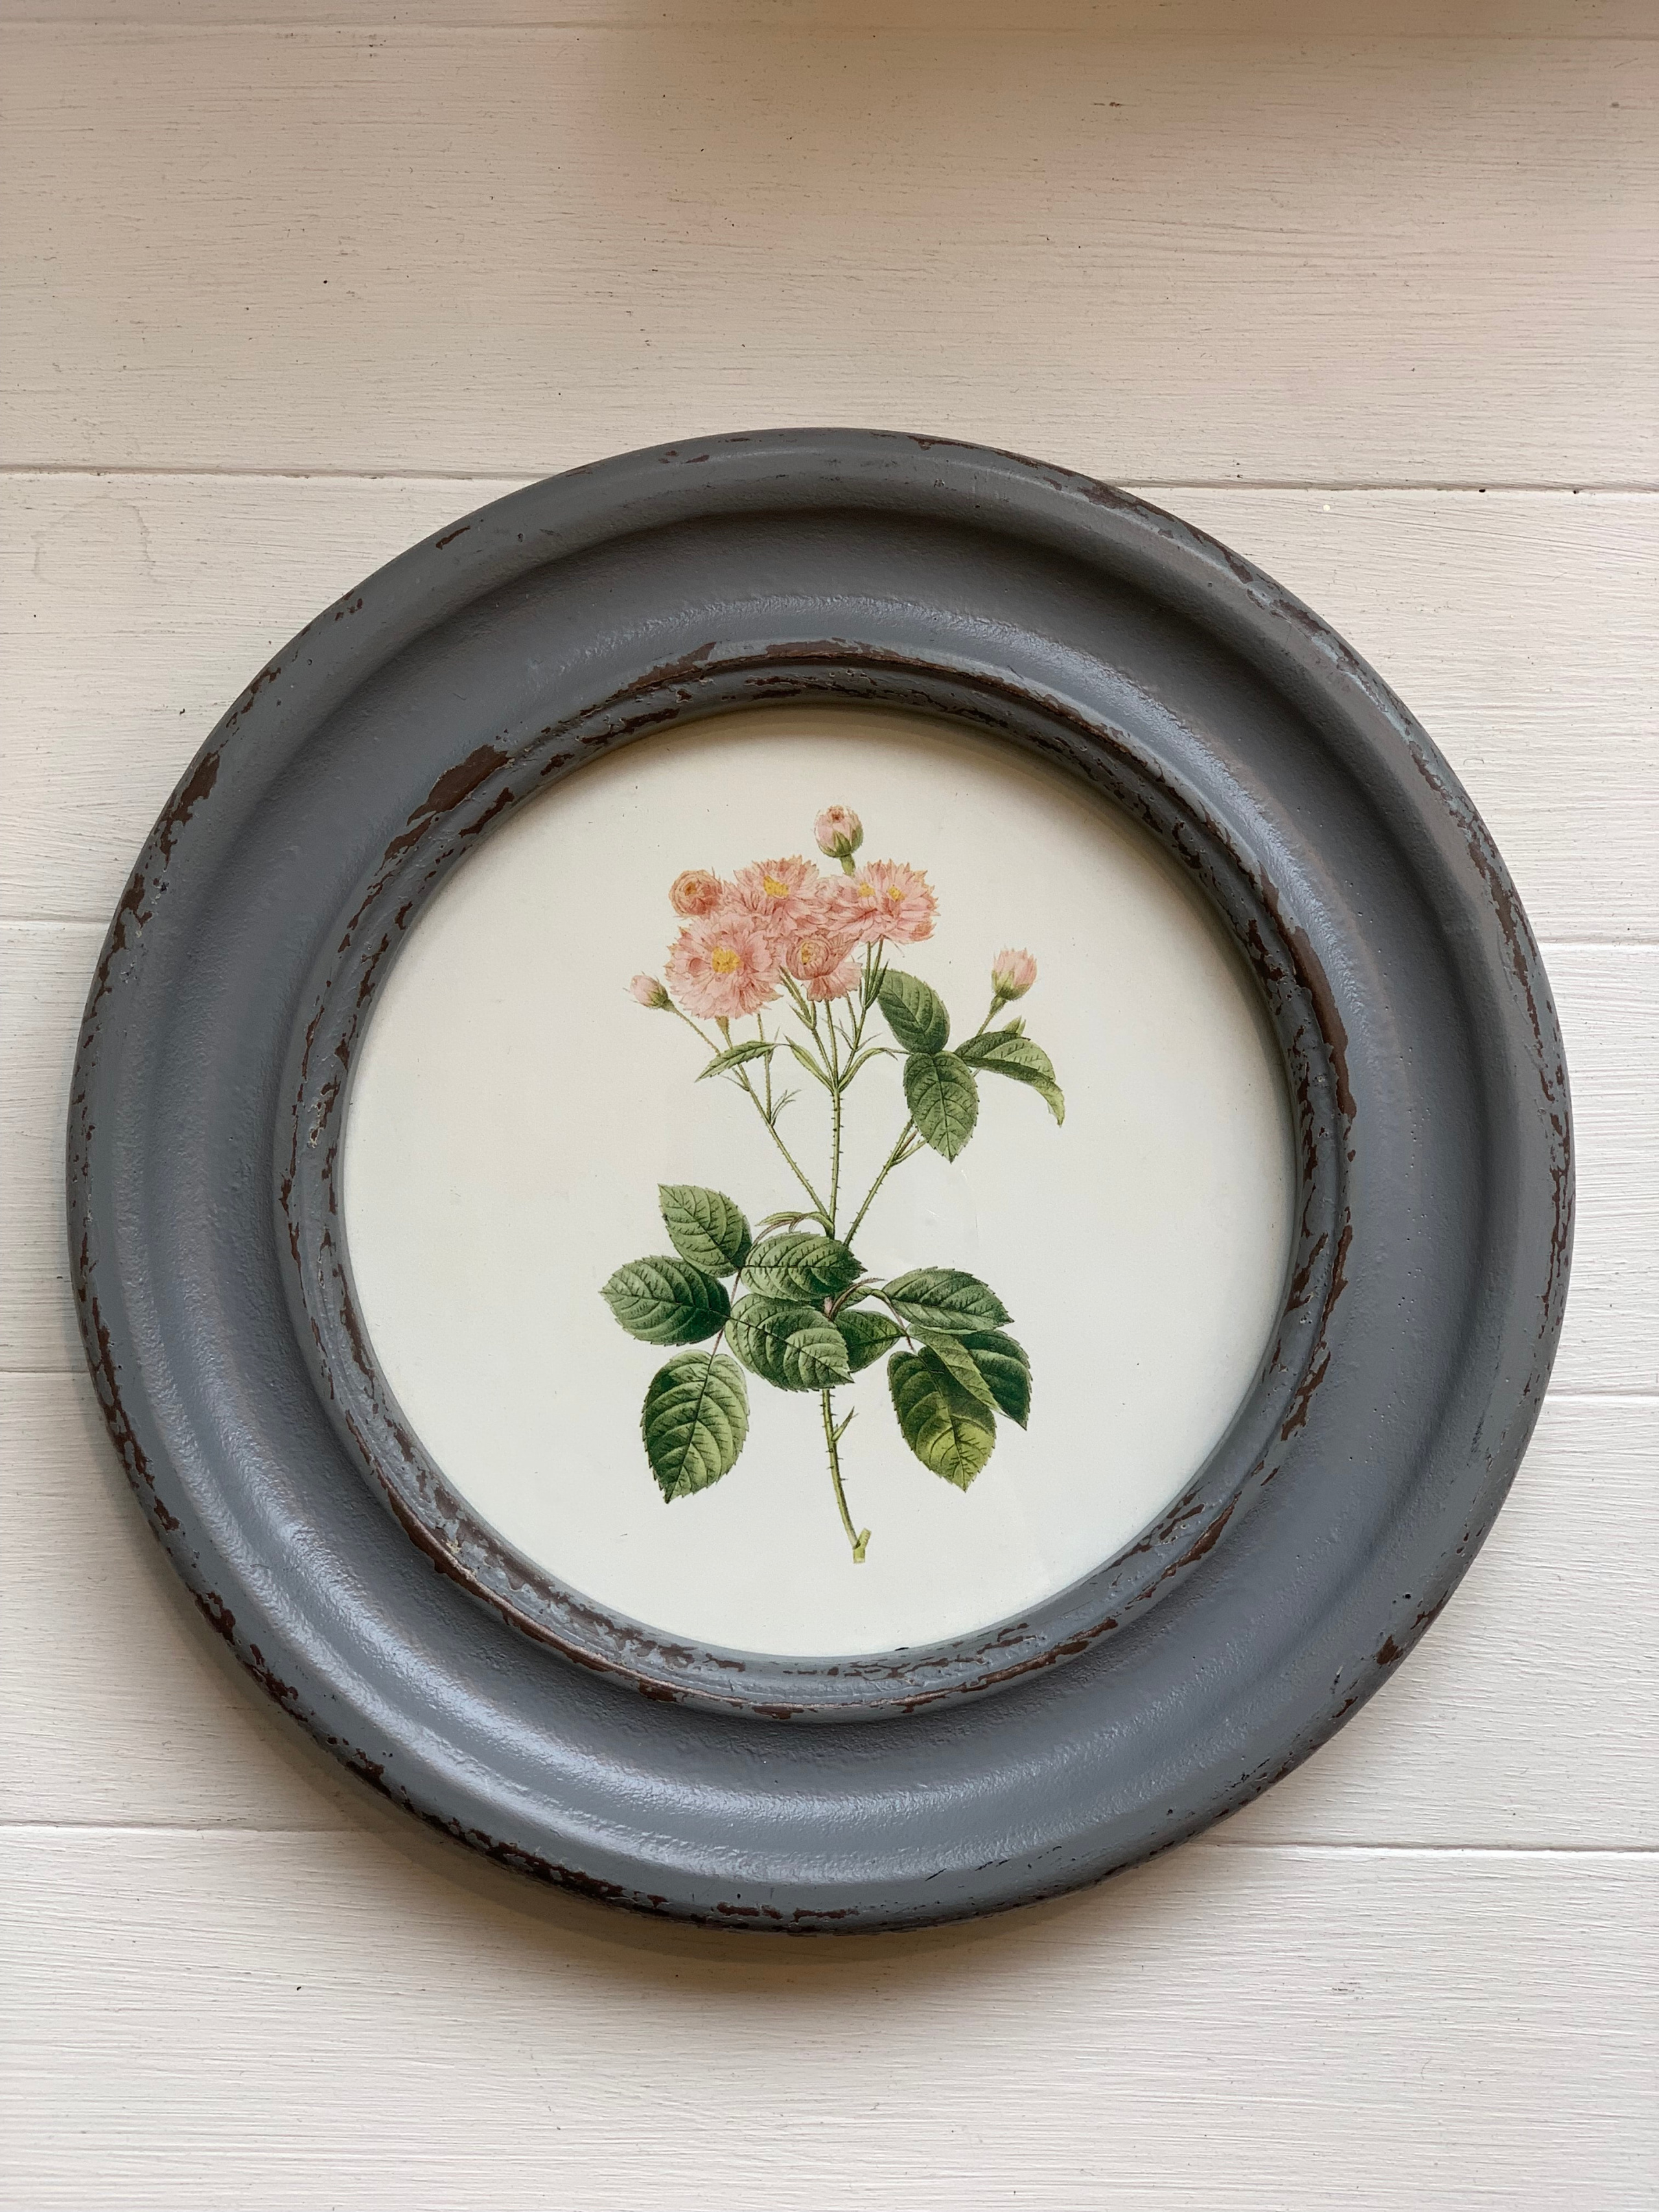 Round Framed Vintage Style Rose Wall Decor Edwin Loy Home